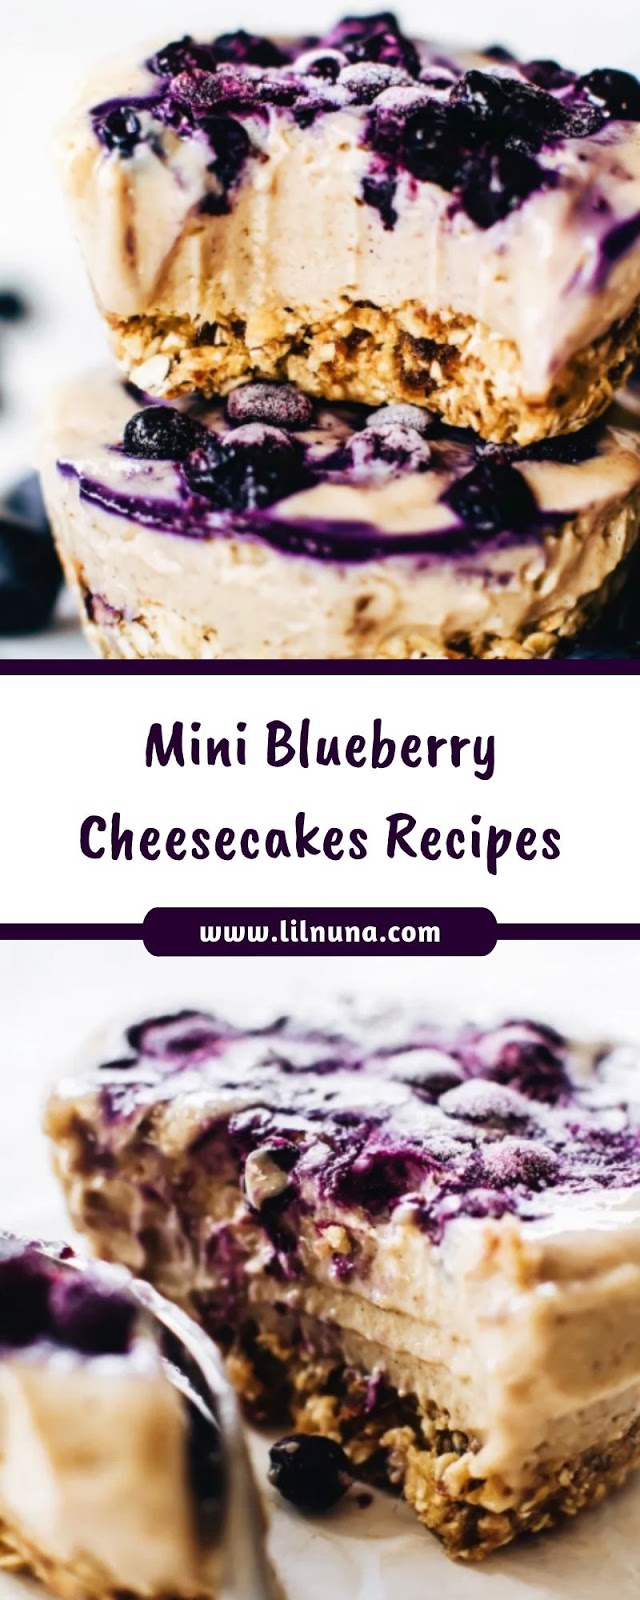 Mini Blueberry Cheesecakes Recipes